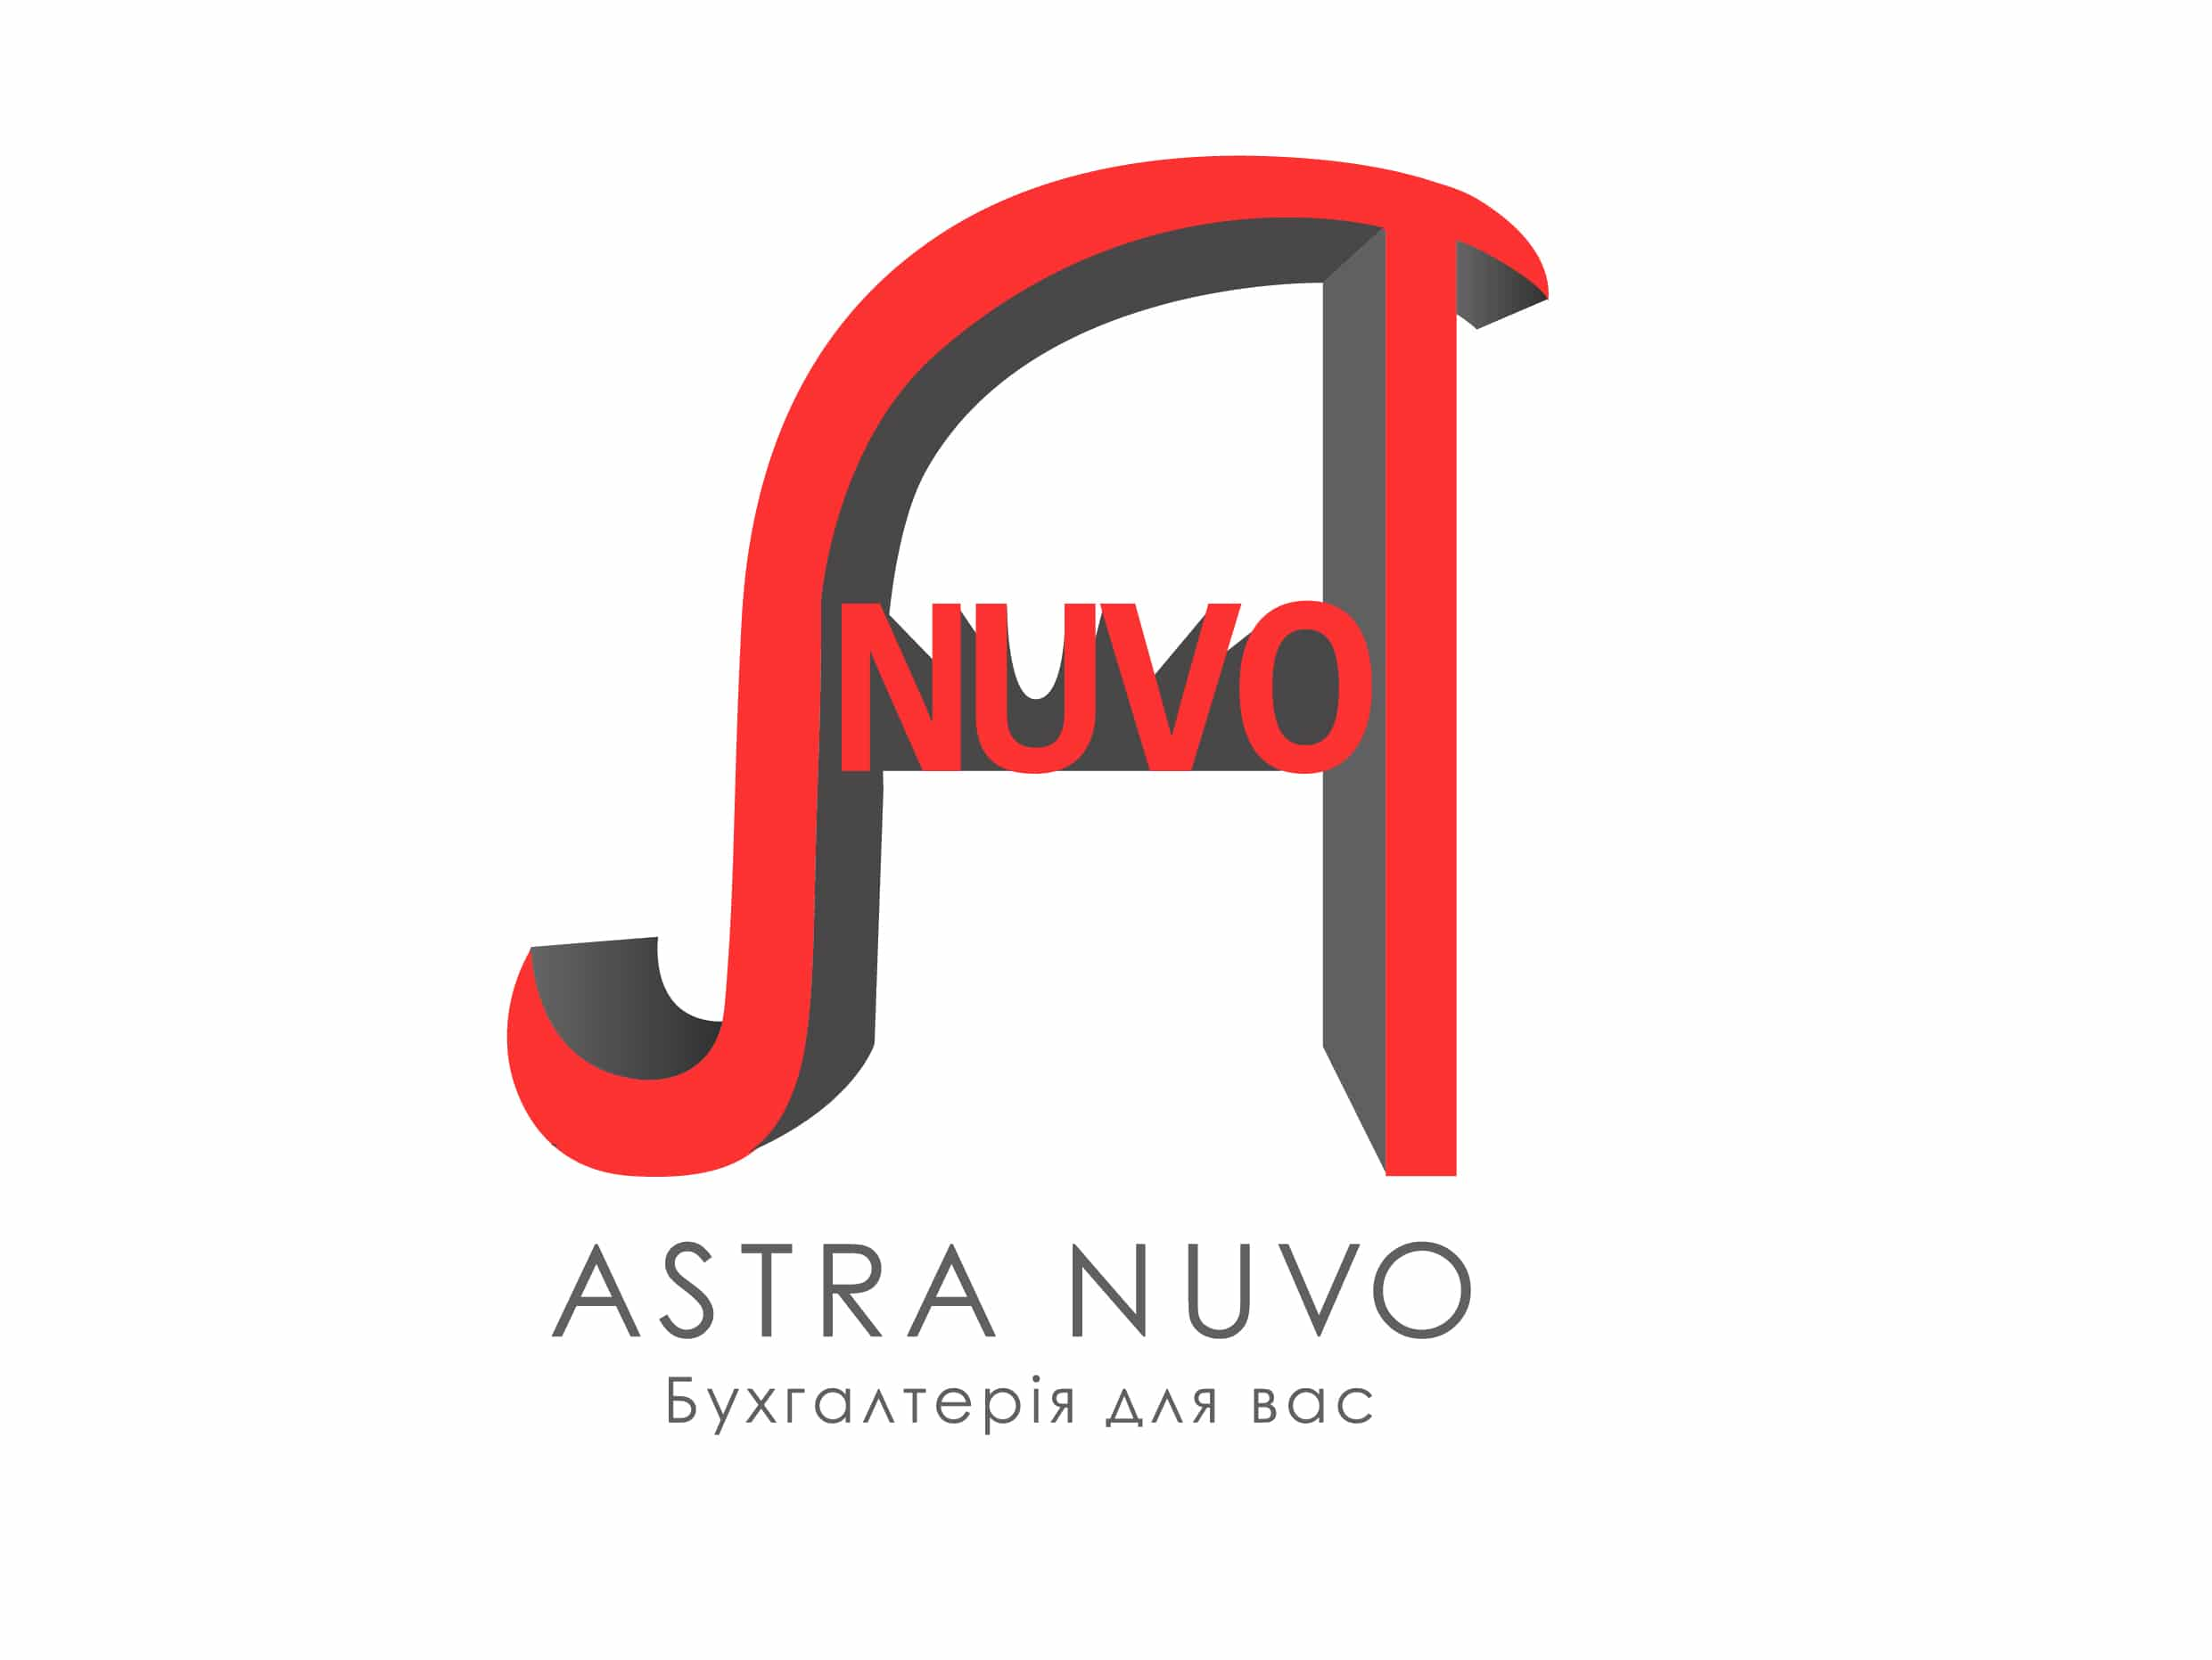 Astra Nuvo